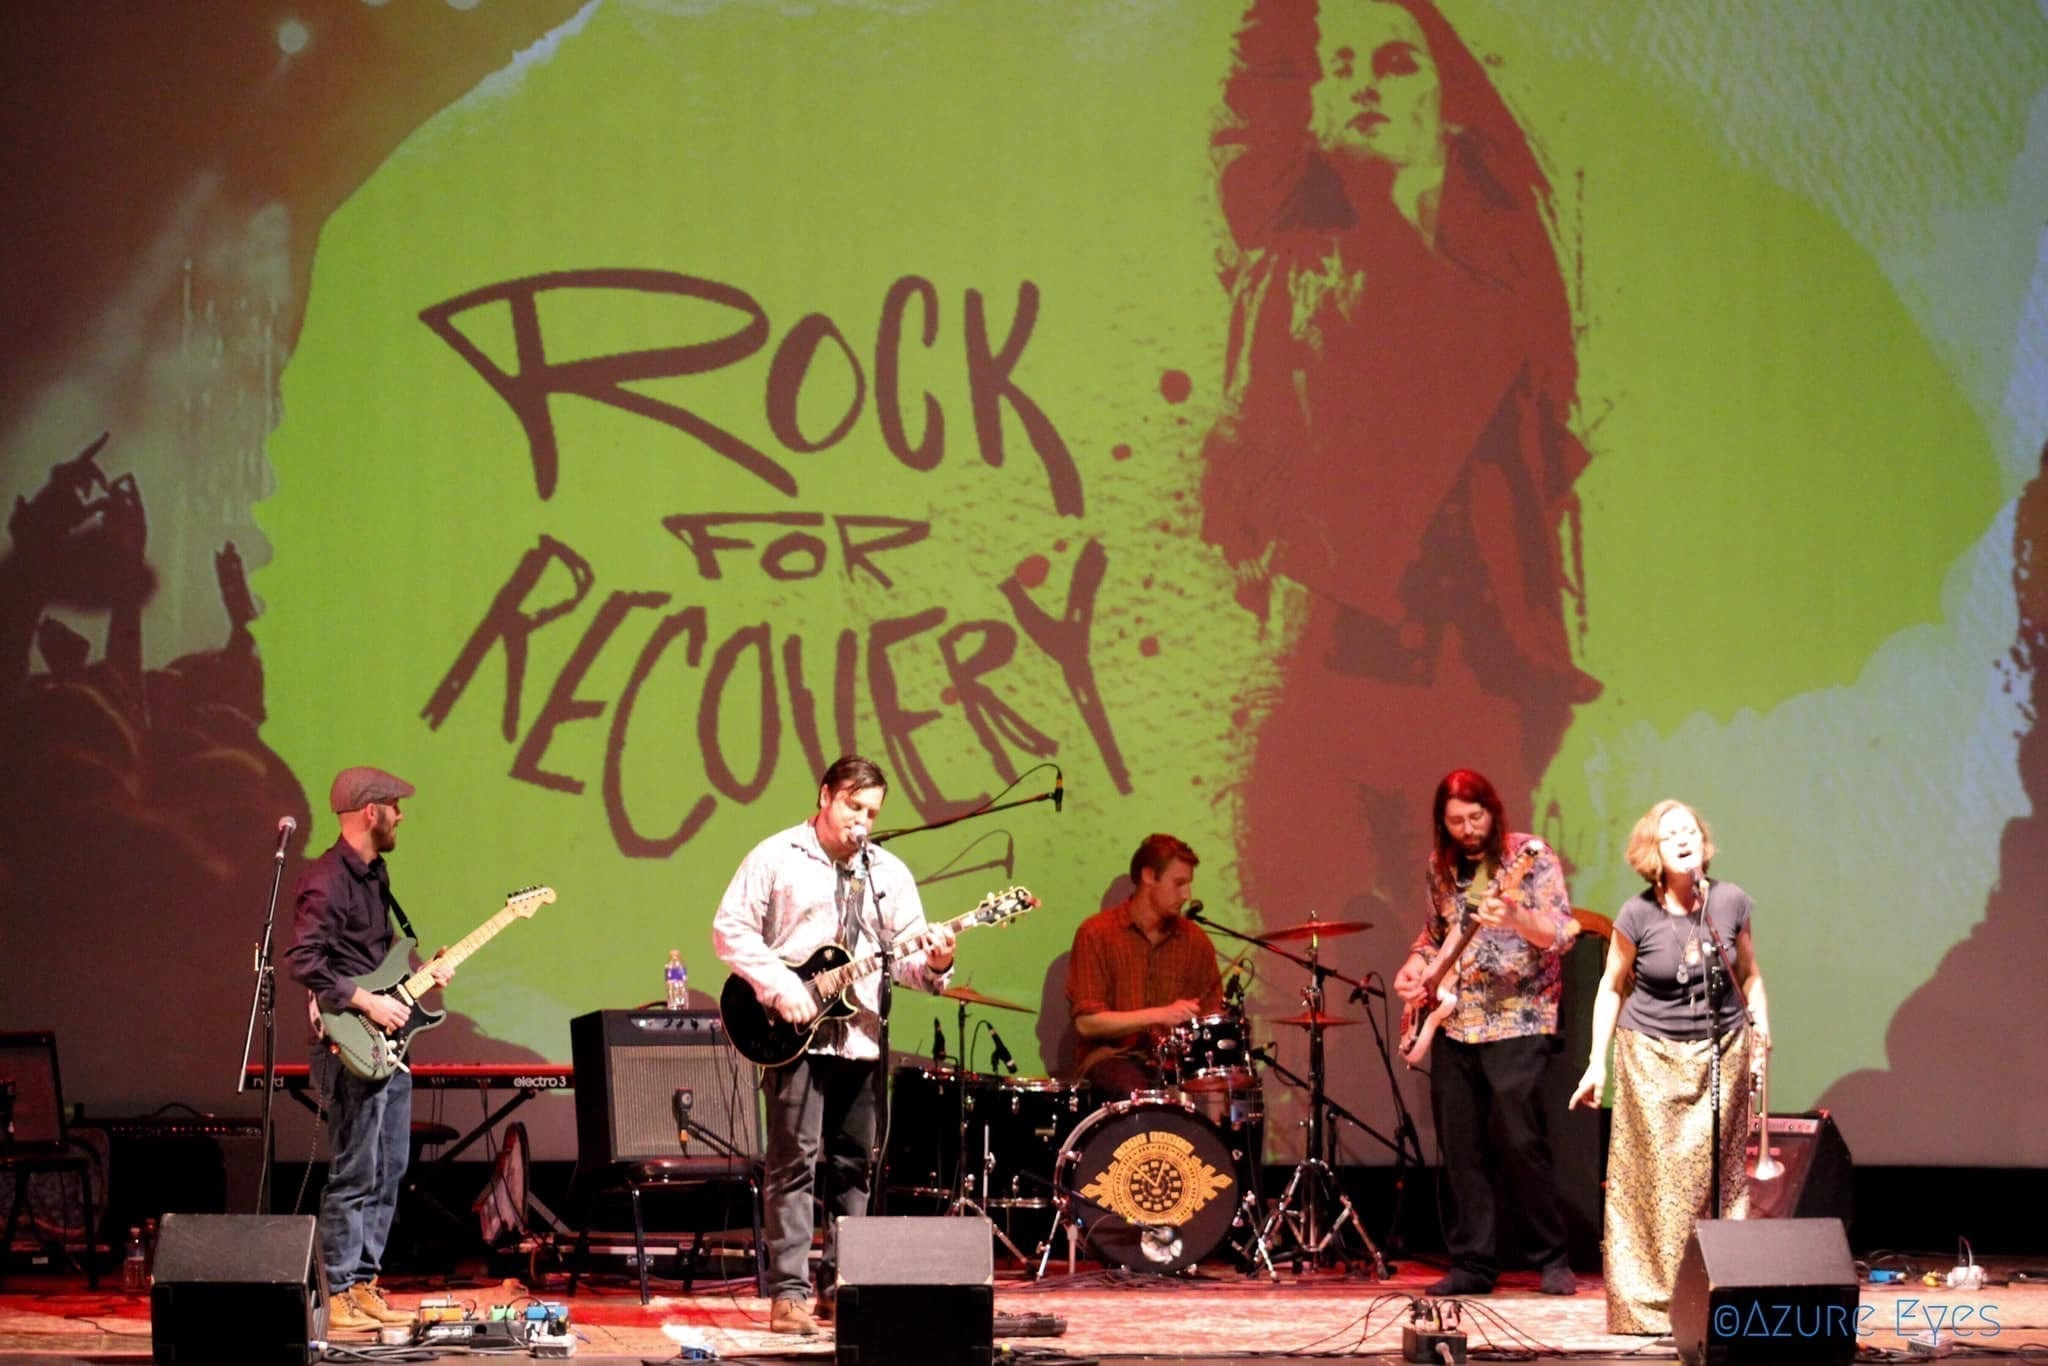 The second annual Rock for Recovery fundraiser for Helio Health took place on March 29 at The Palace Theatre in Syracuse